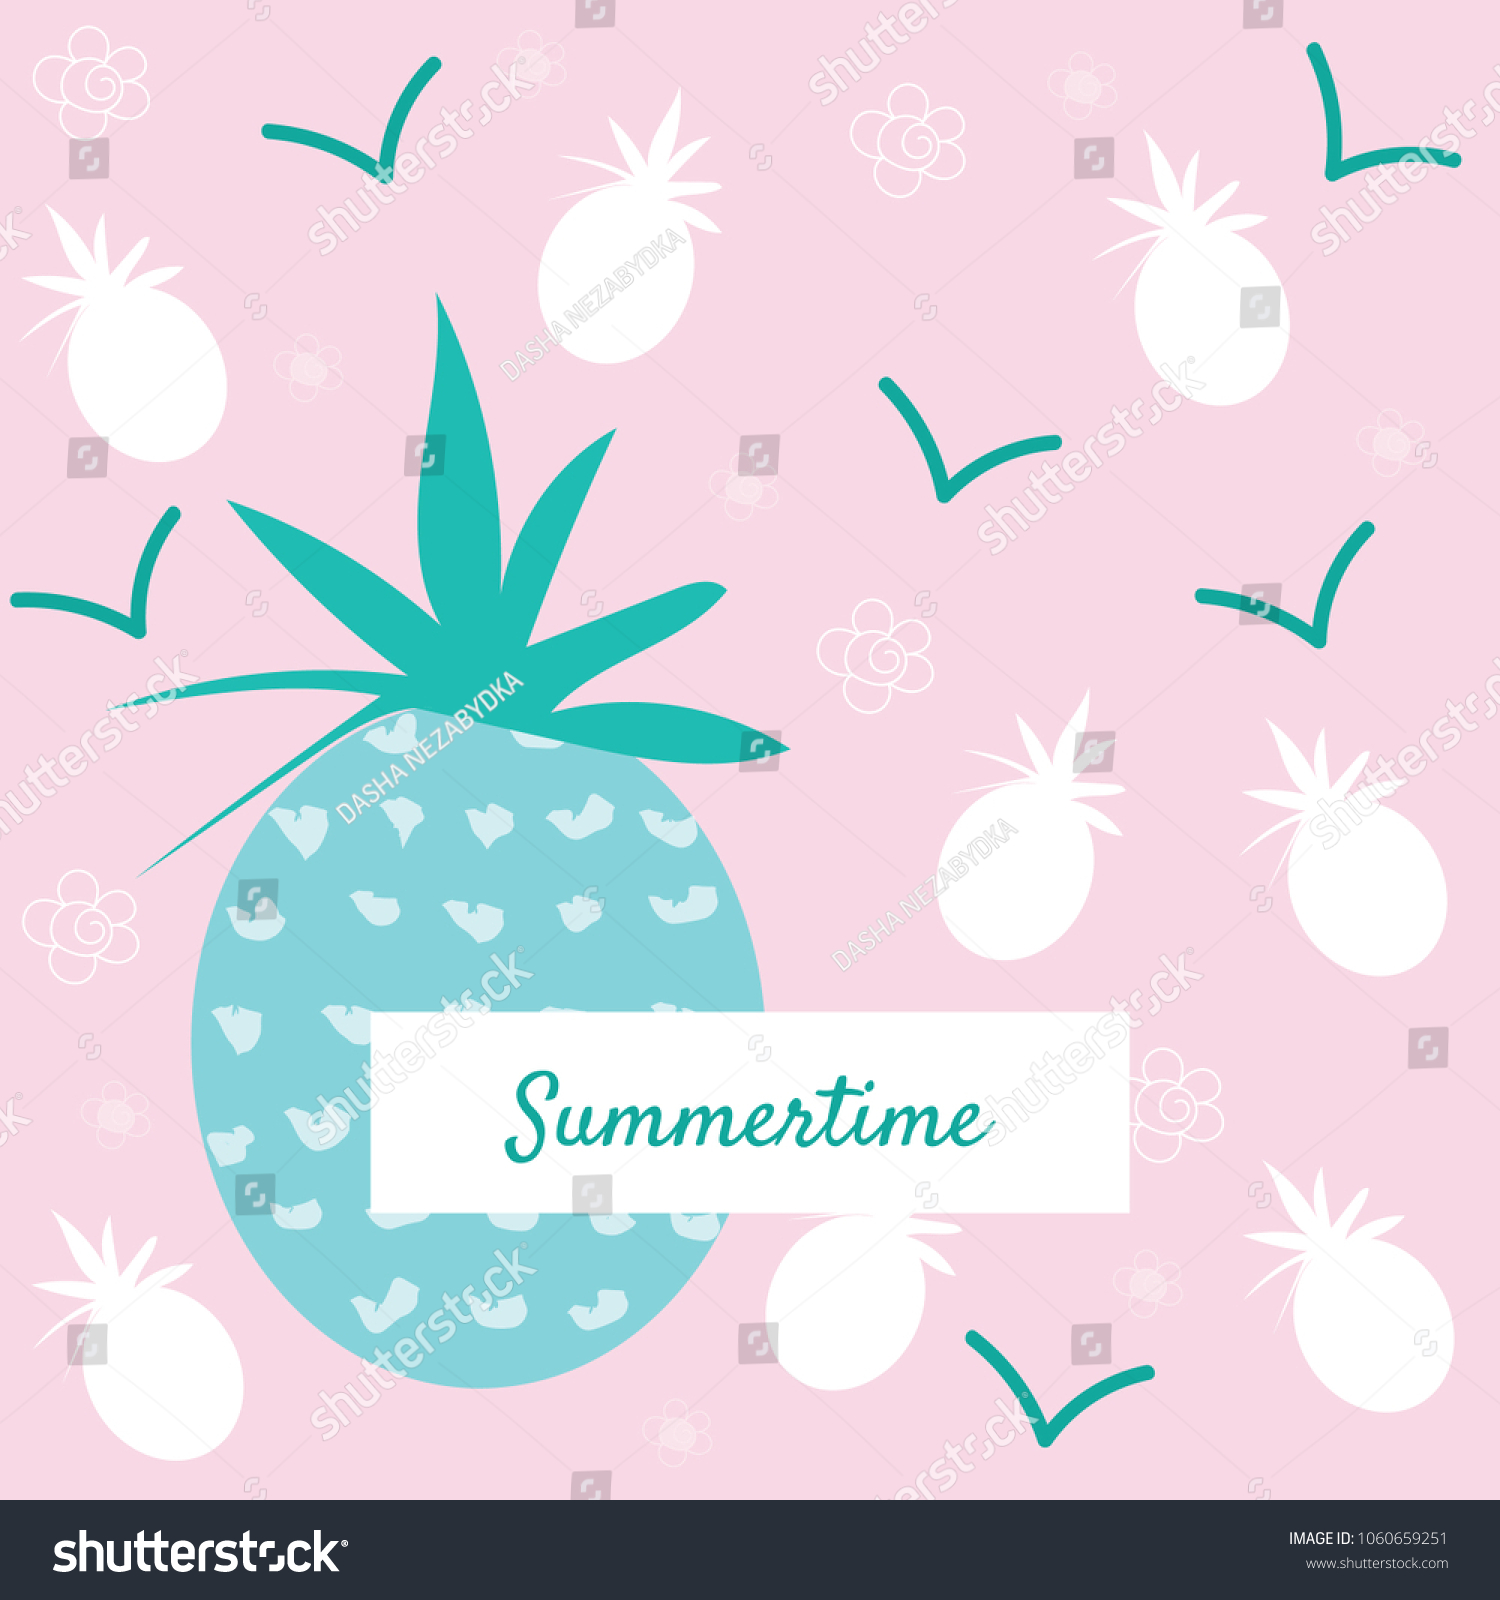 Pineapple Summertime Design Cards Postcards Invitations Stock Vector